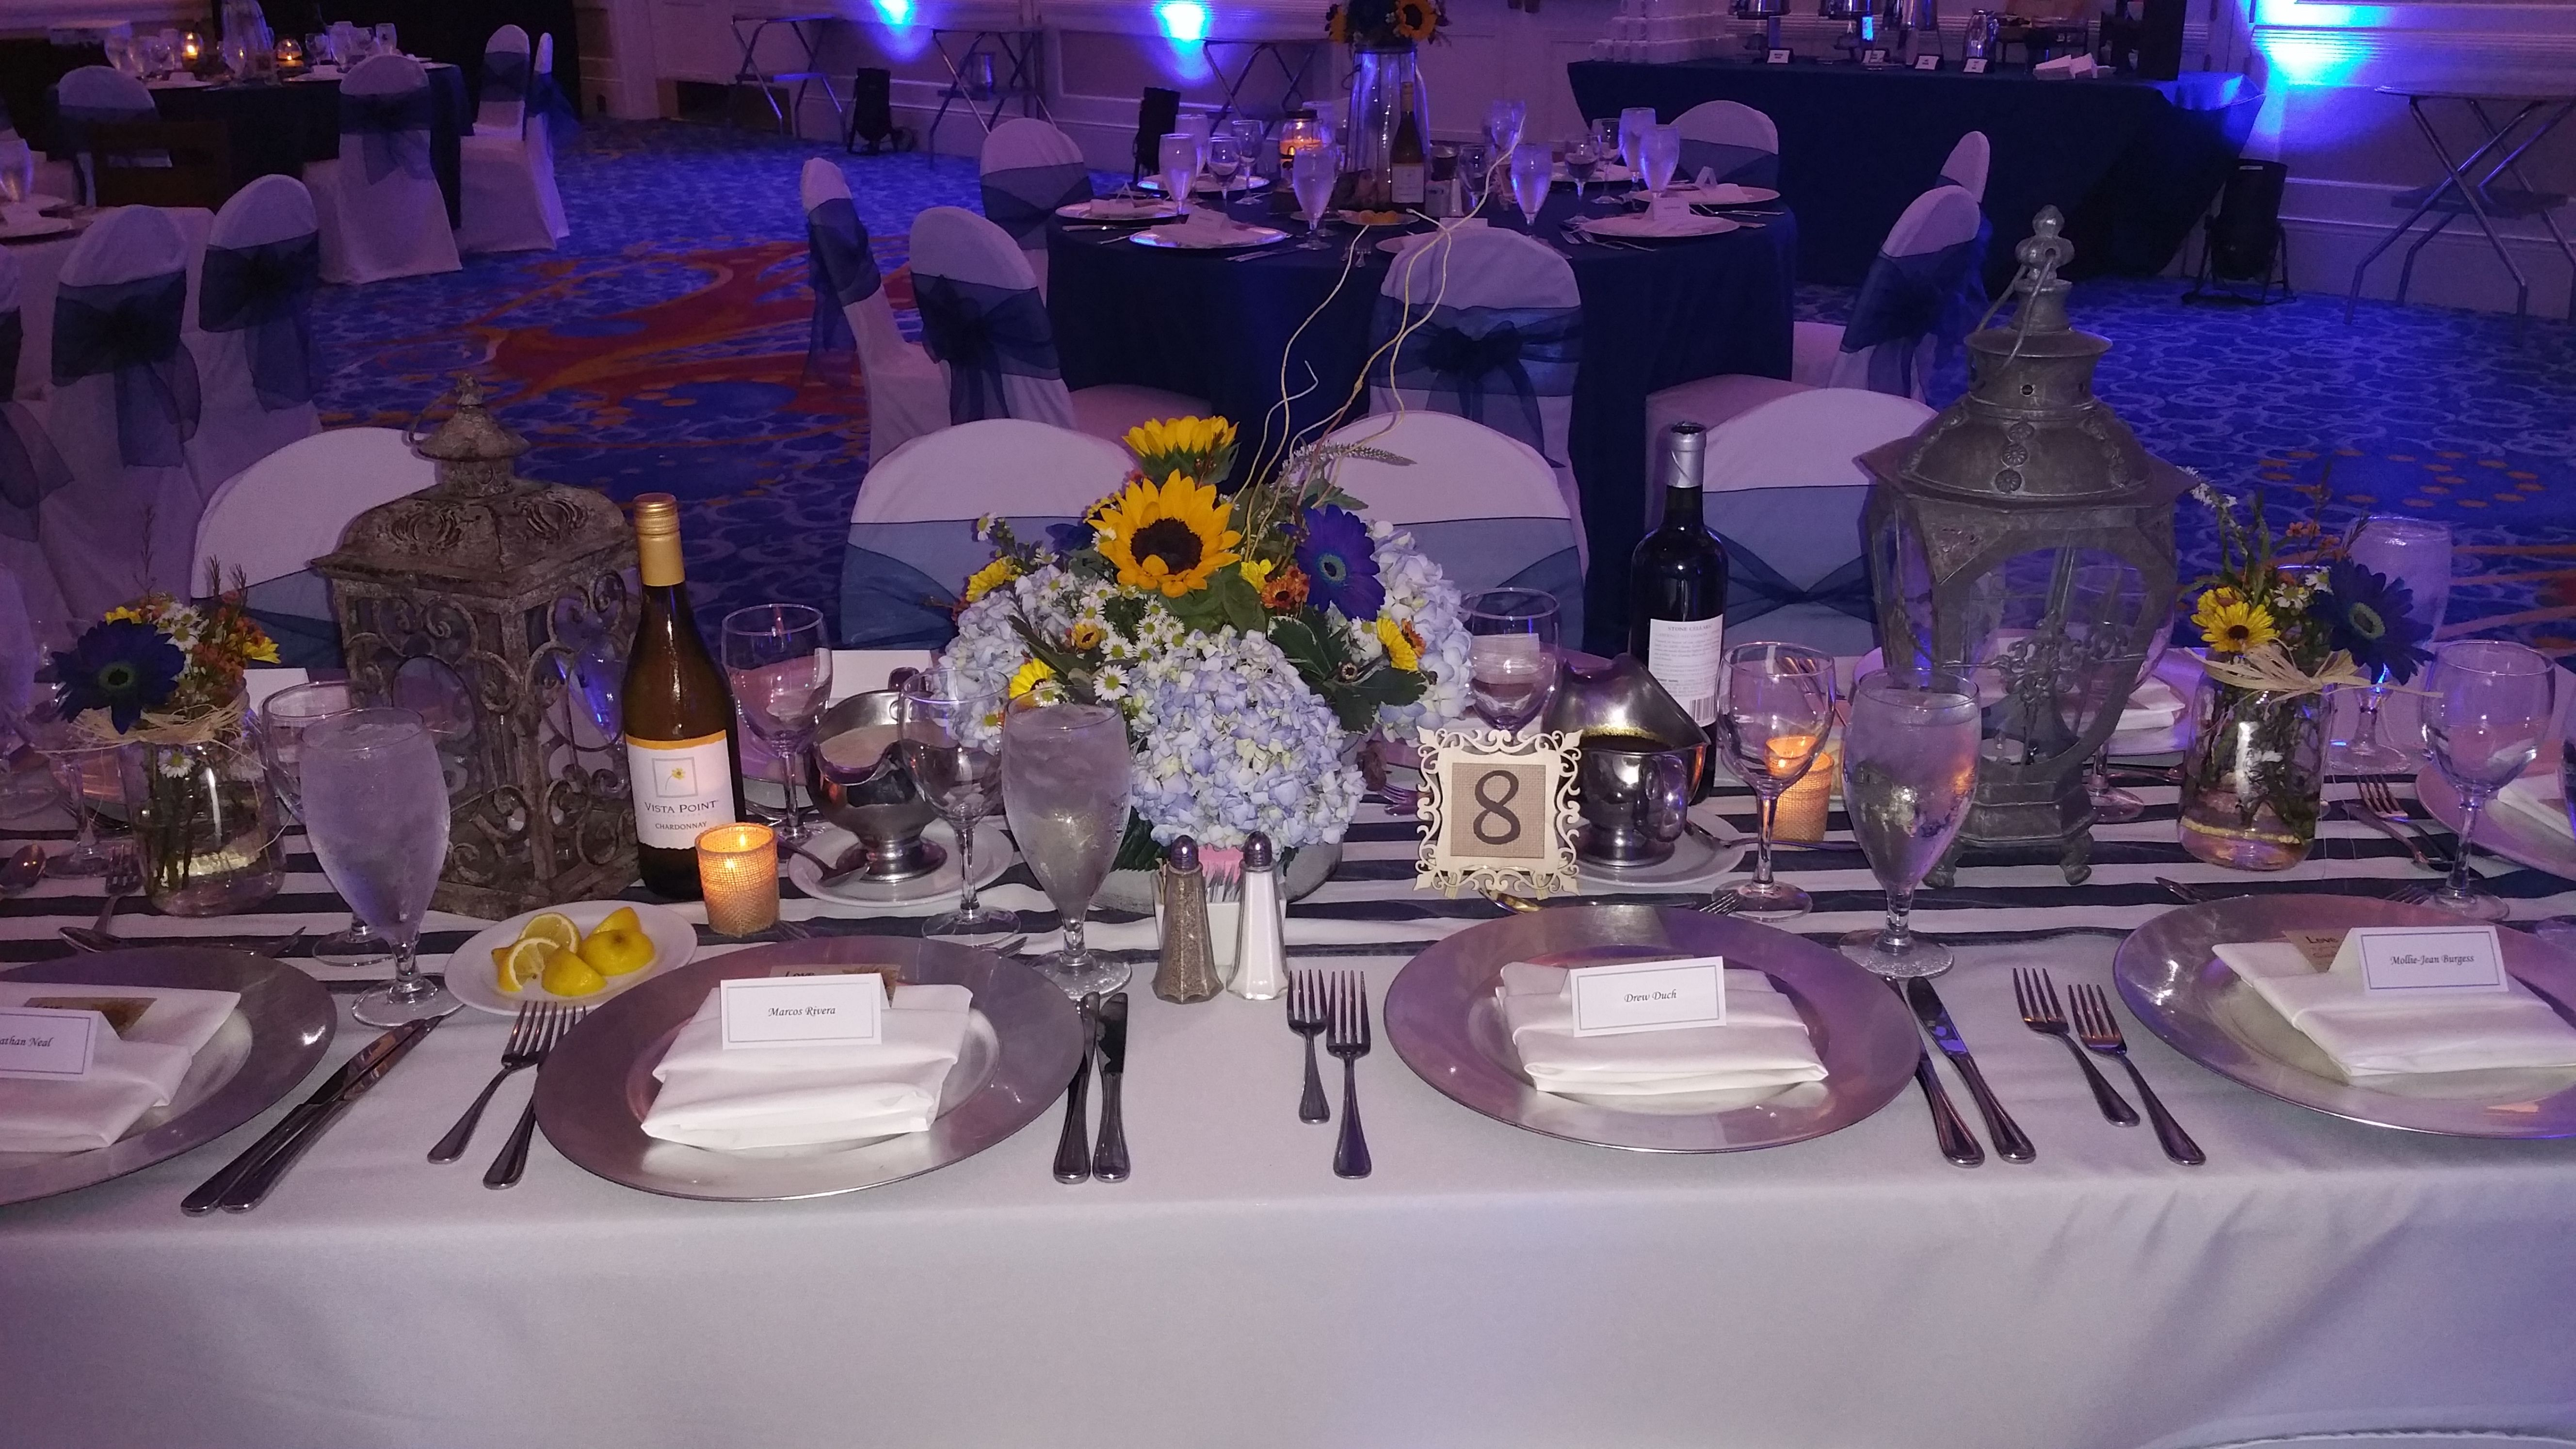 Rustic banquet style table setting Rustic Chic Wedding Photo by Will Hawkins Photography & Rustic banquet style table setting Rustic Chic Wedding Photo by Will ...